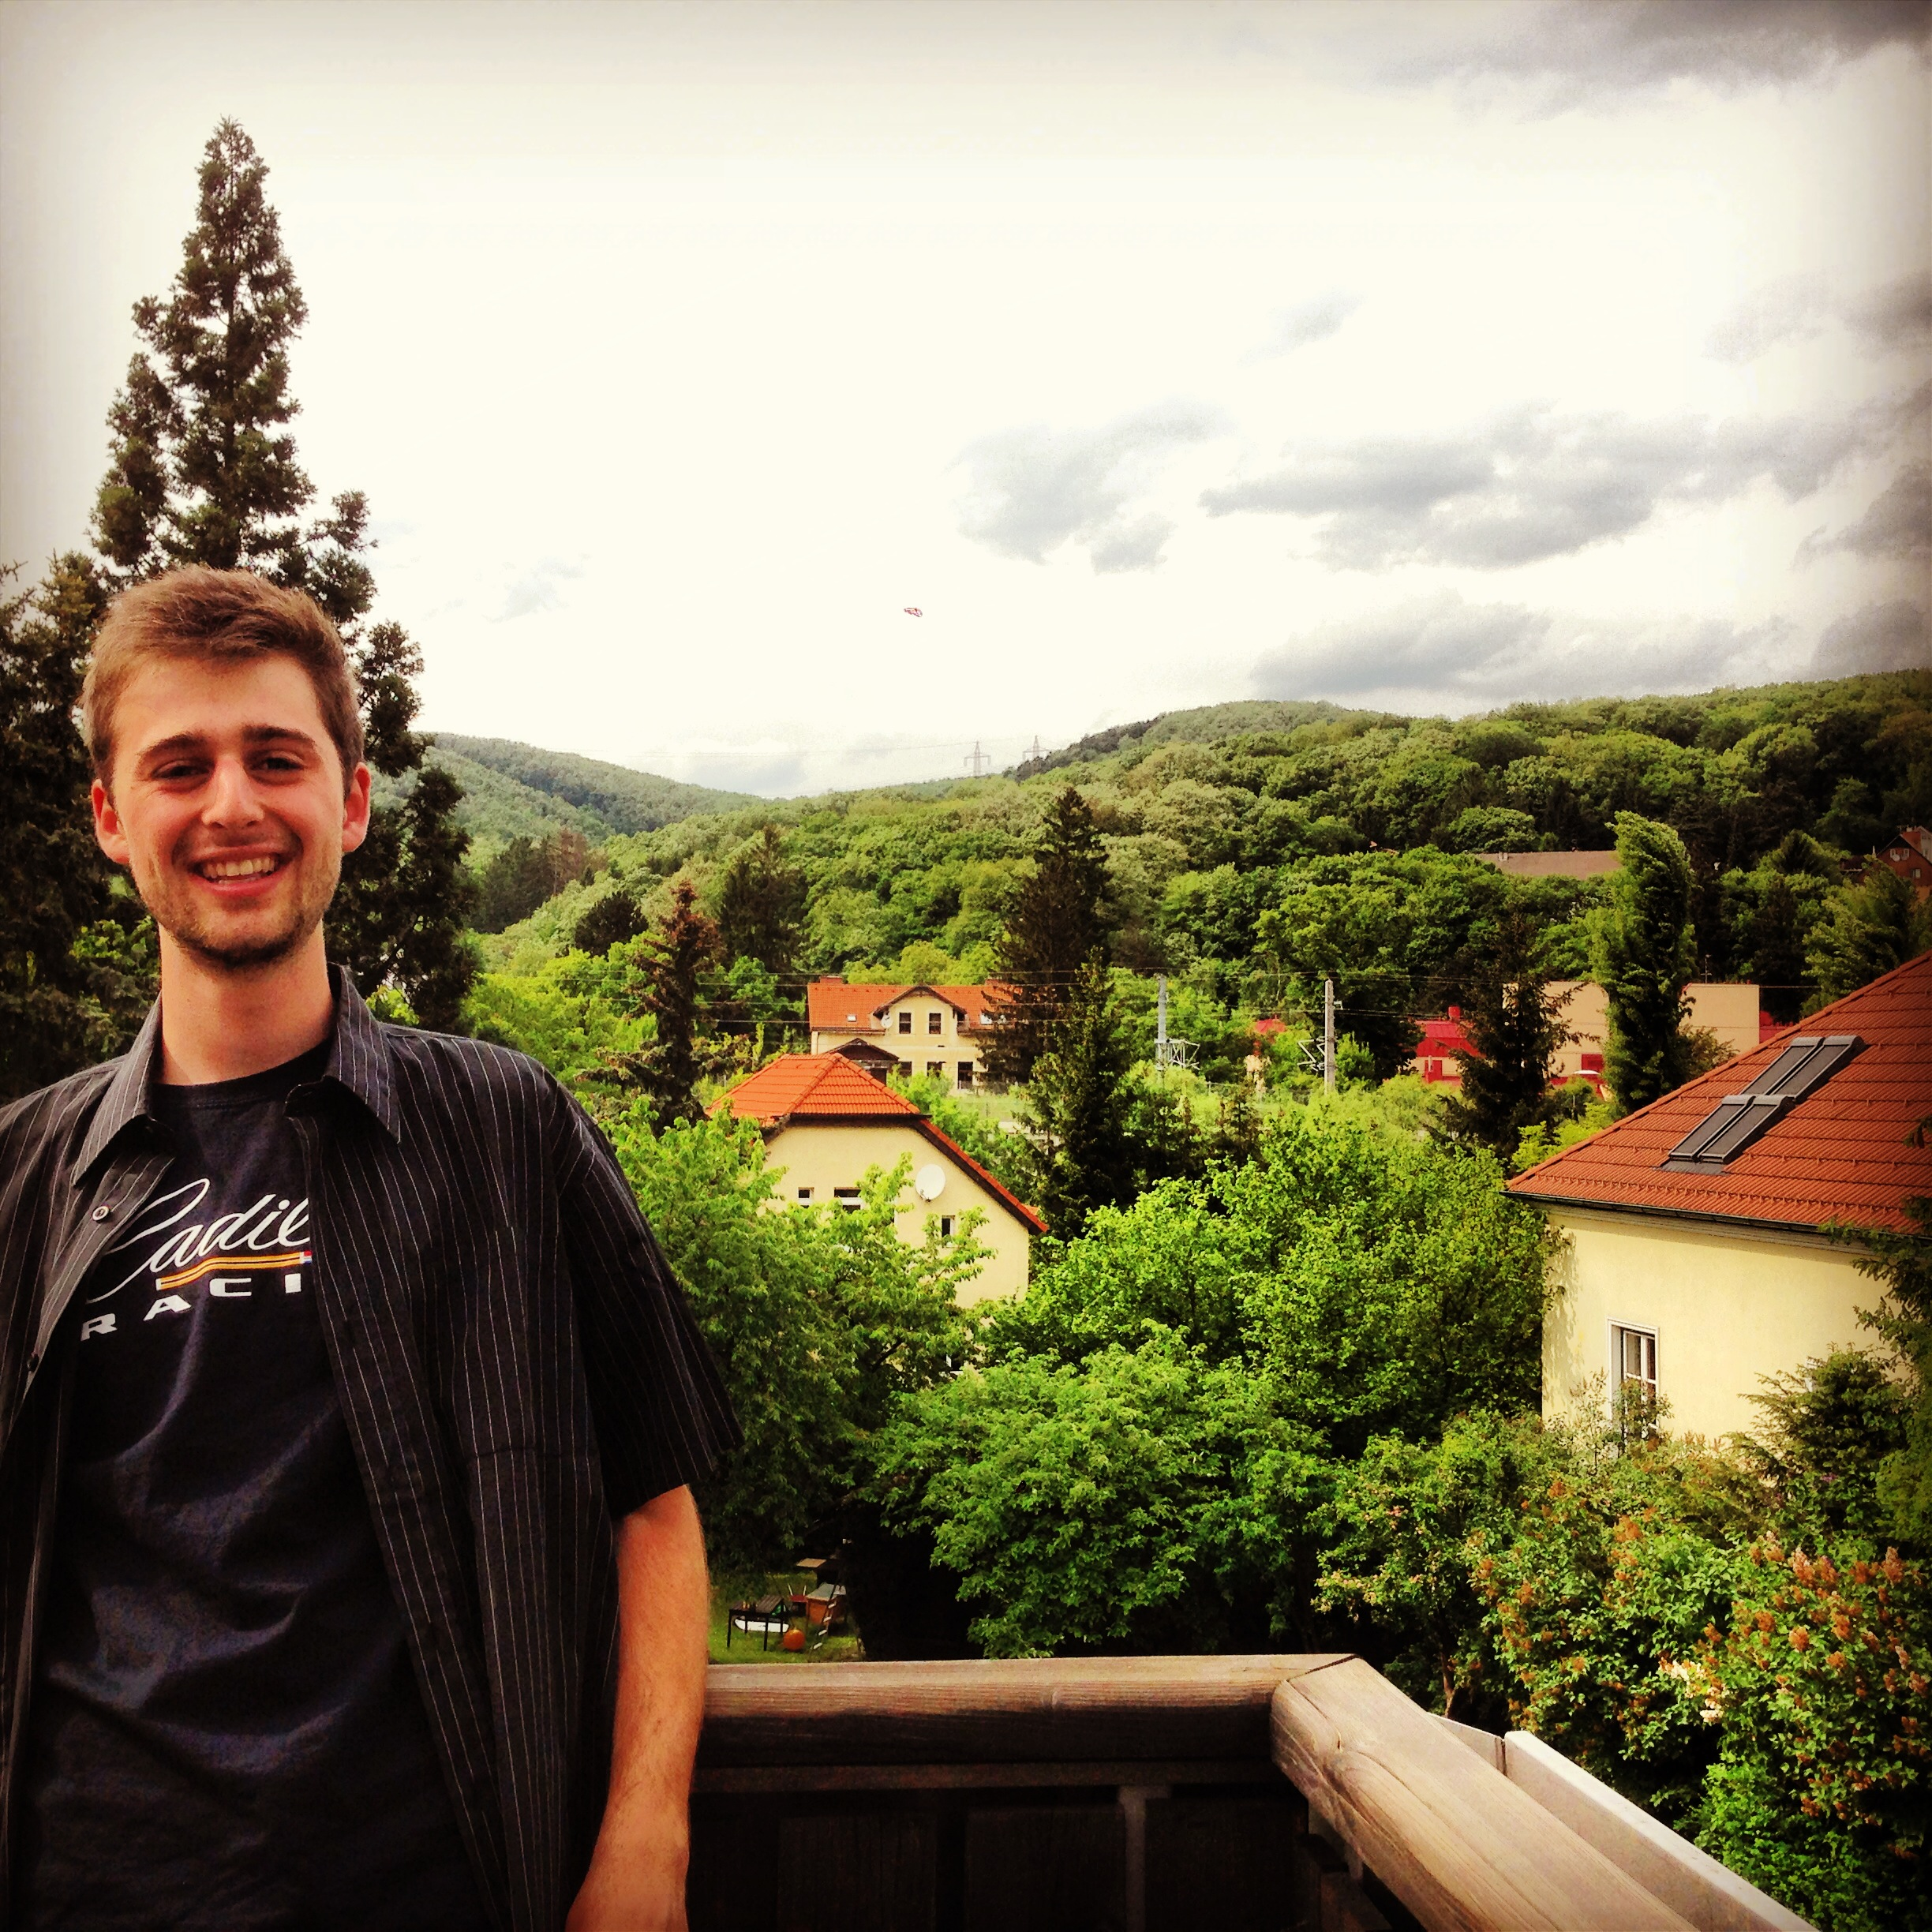 Myself, in the residential foothills of the Alps in the Vienna country side.